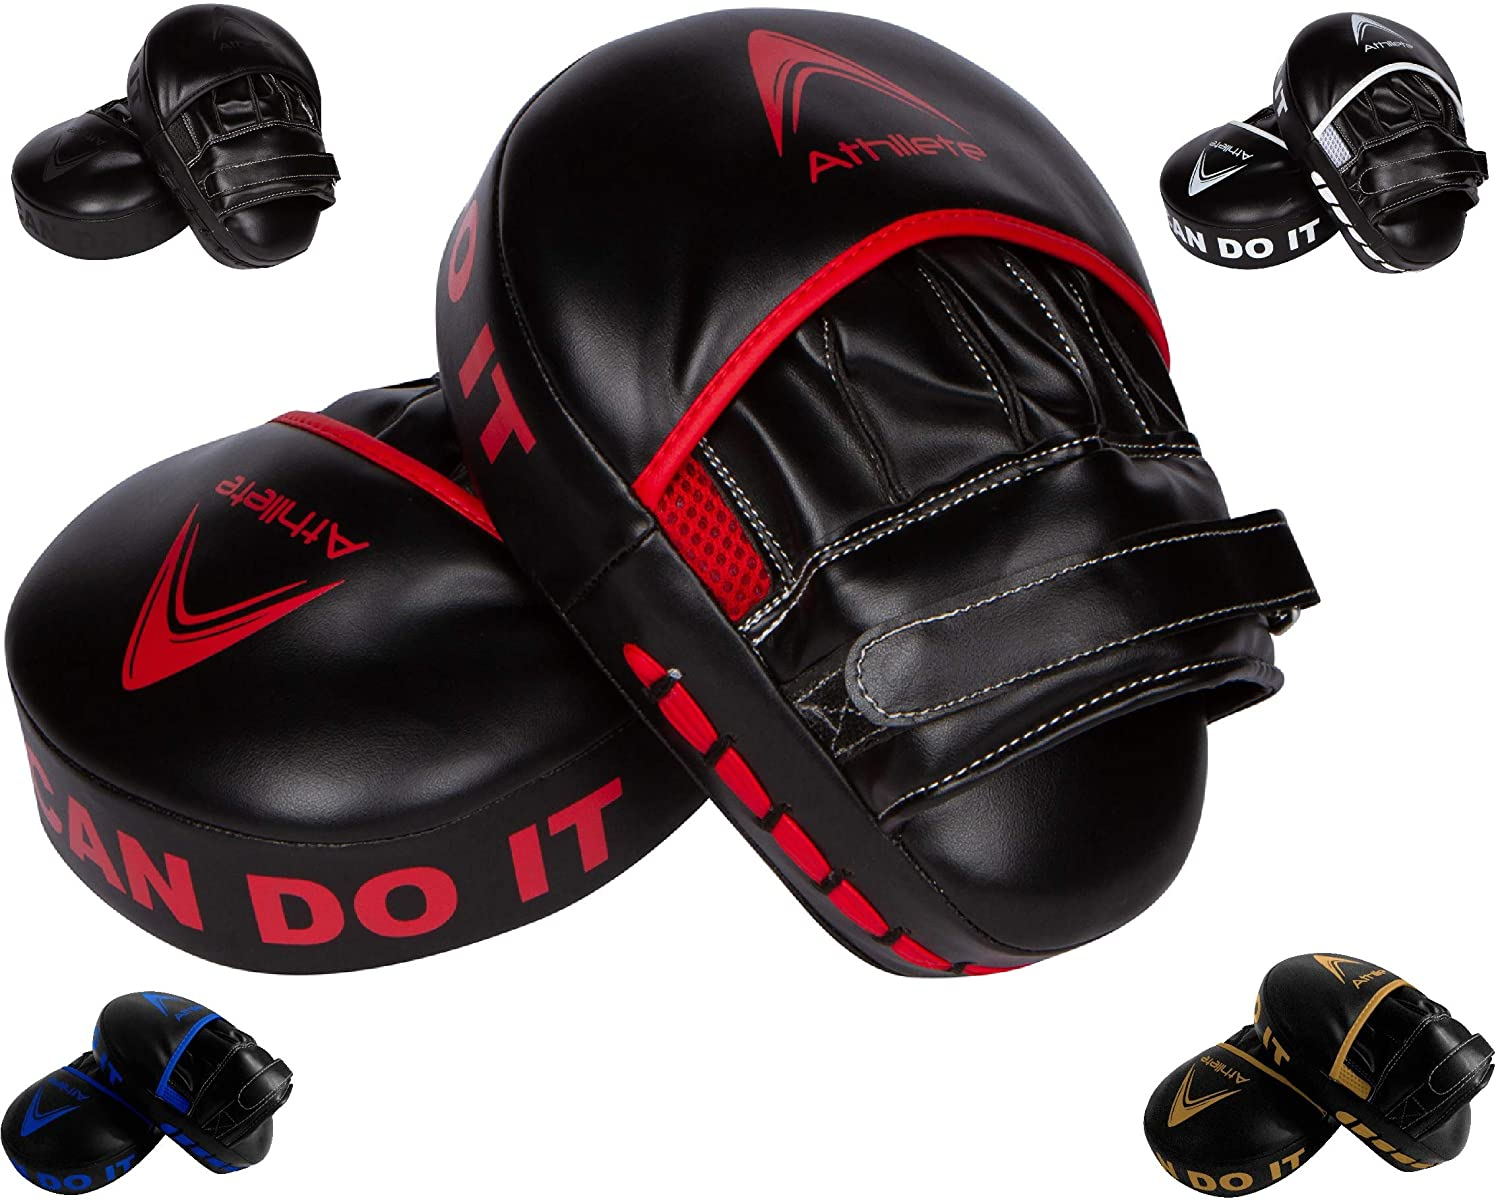 Athllete Boxing MMA Punching Mitts- Curved Focus Pad- Muay Thai Hook and Jab Curved Kickboxing Punching Shield